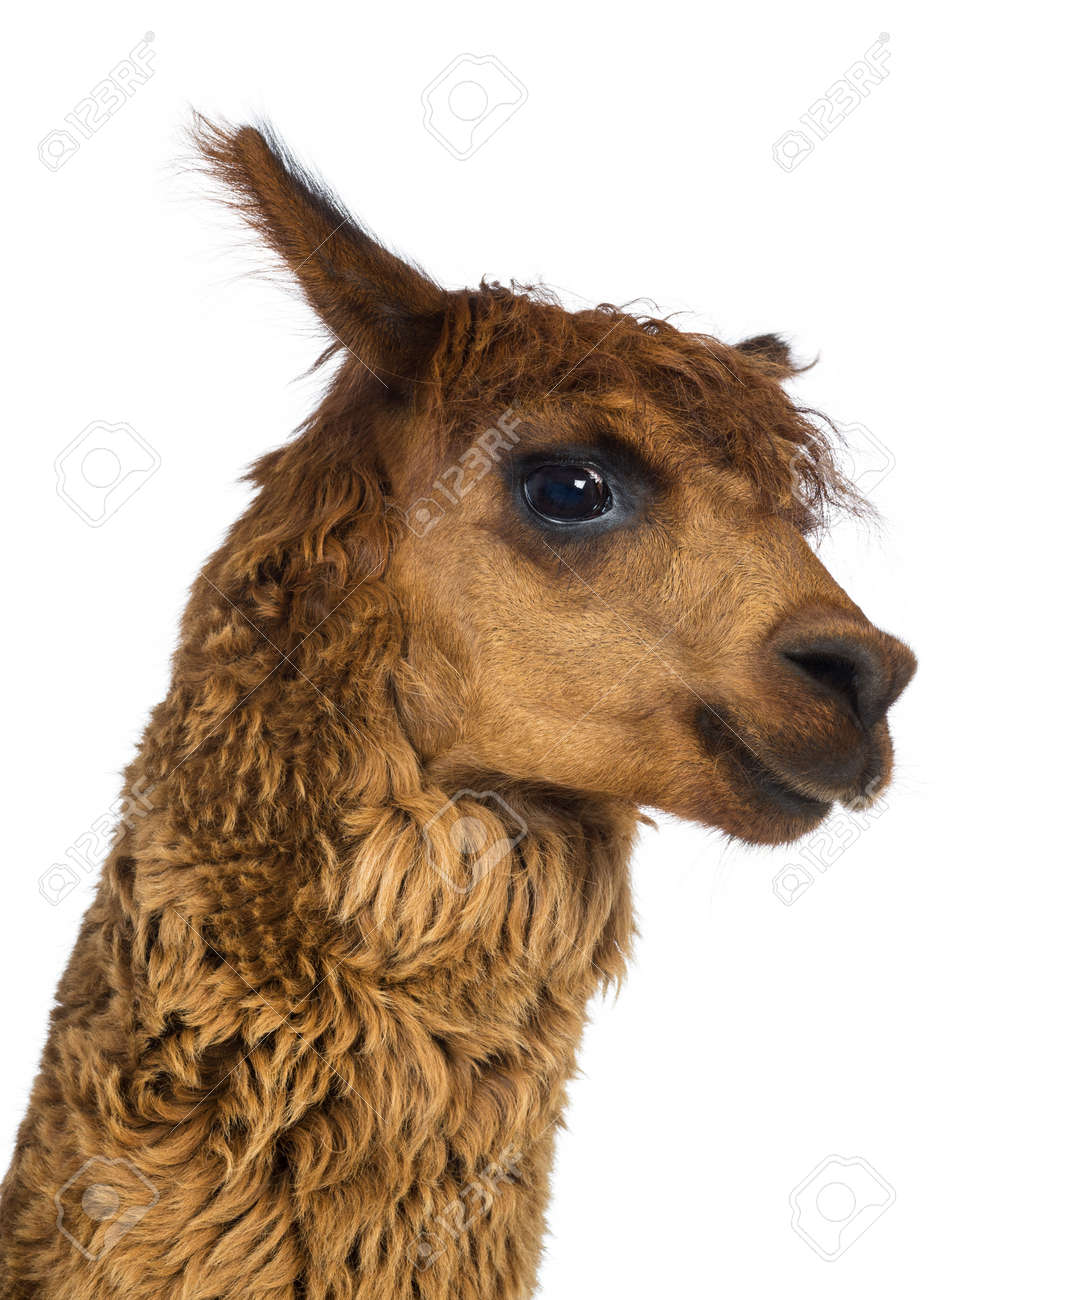 Close-up of Alpaca against white background Stock Photo - 18179162